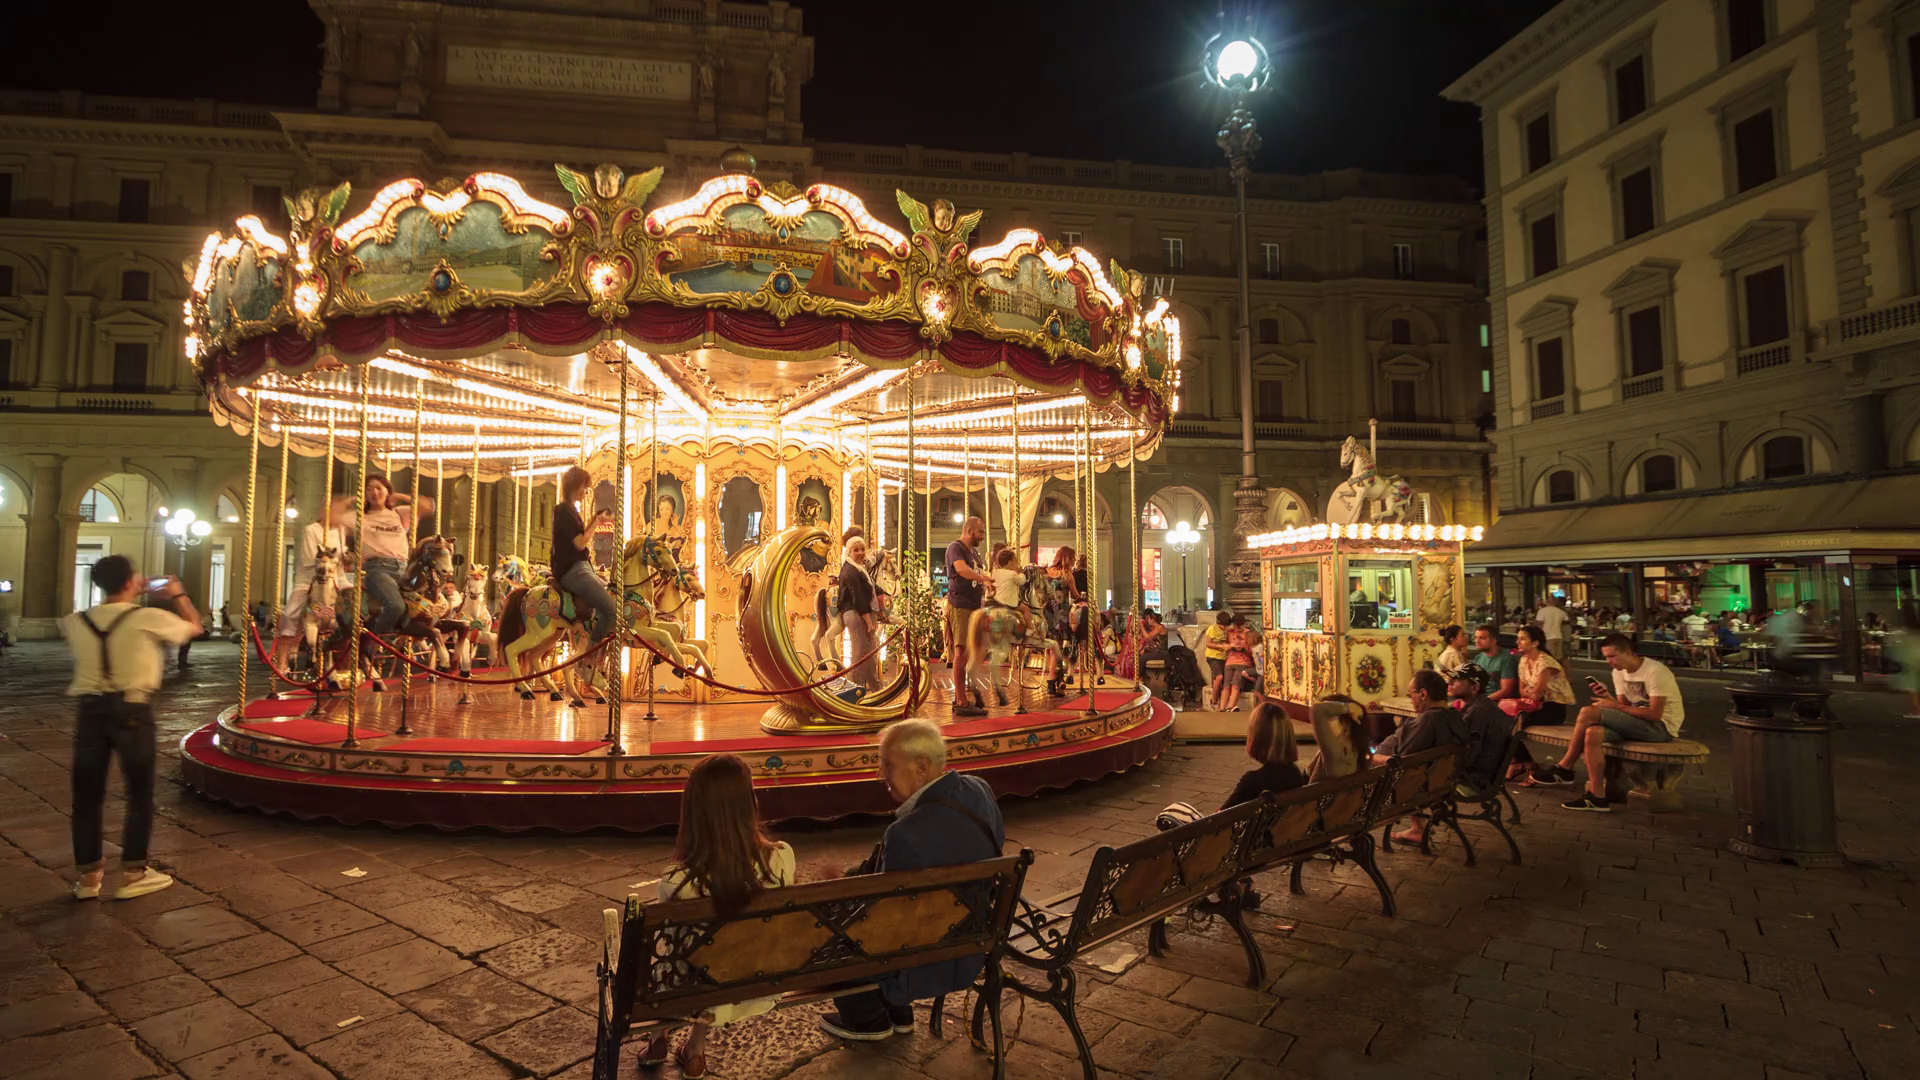 Florence, September 2016: Old carousel with horses in Piazza della ...